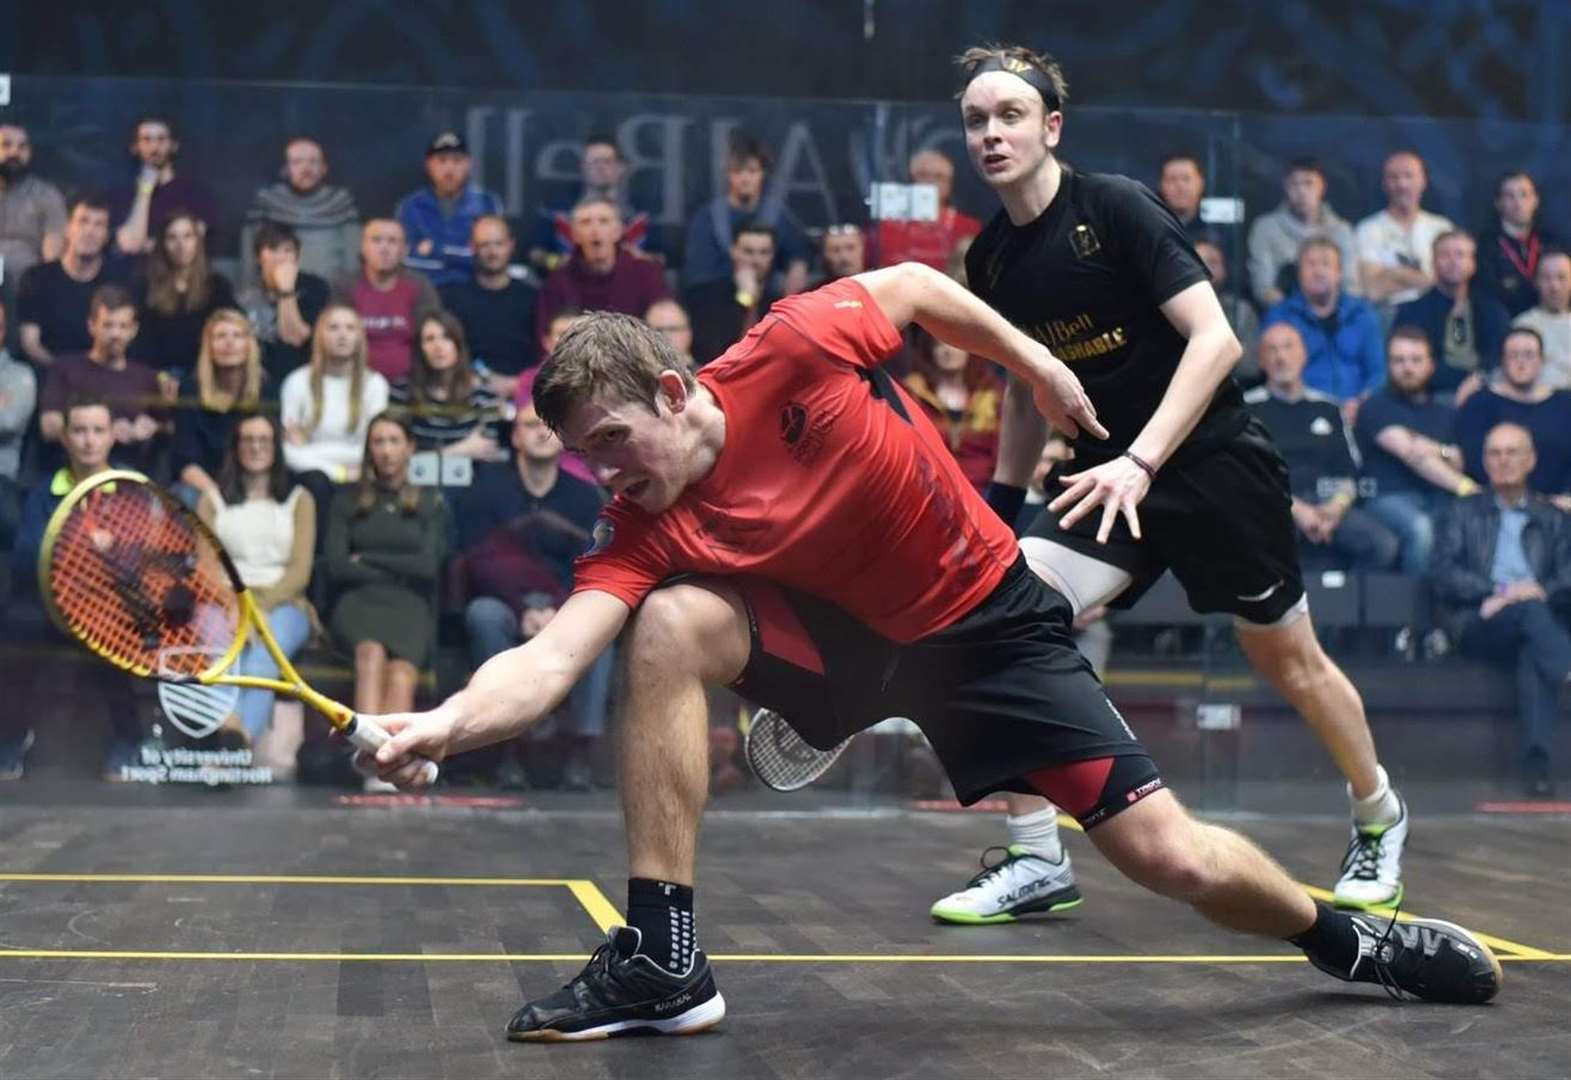 Lobban aims to become the best of British